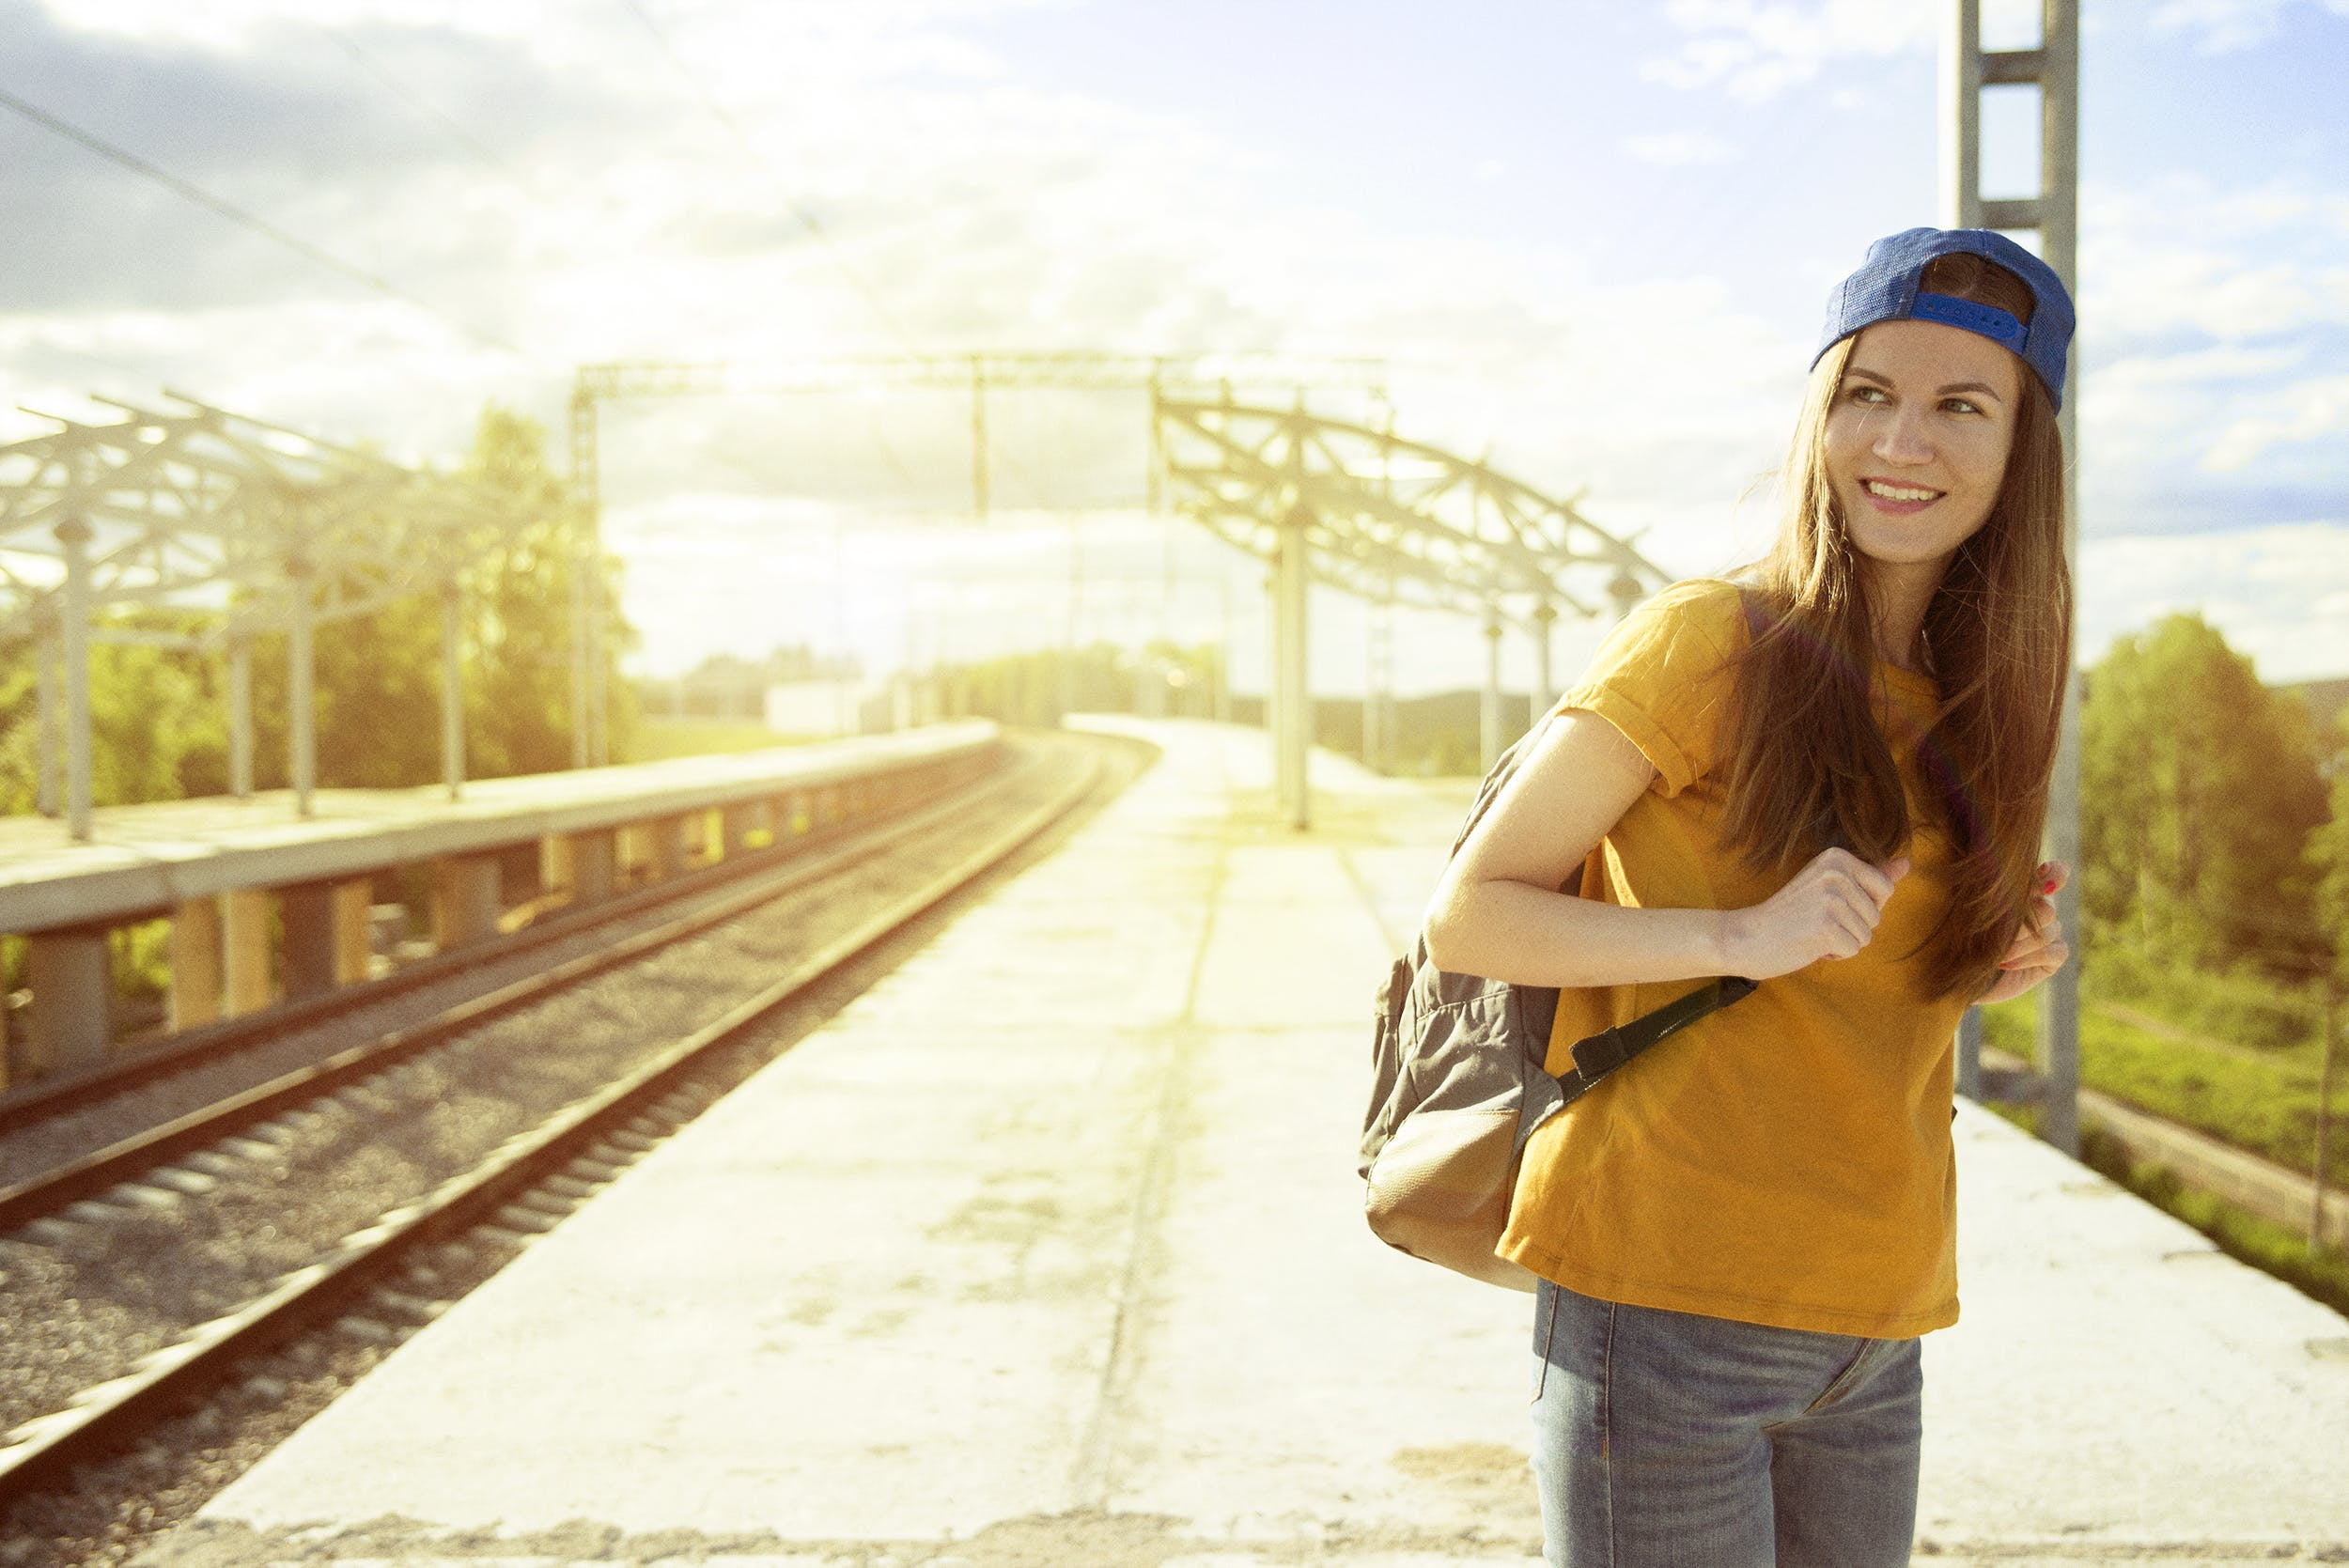 Smiling Woman in Orange T Shirt and Blue Snap Back Cap Carrying Backpack